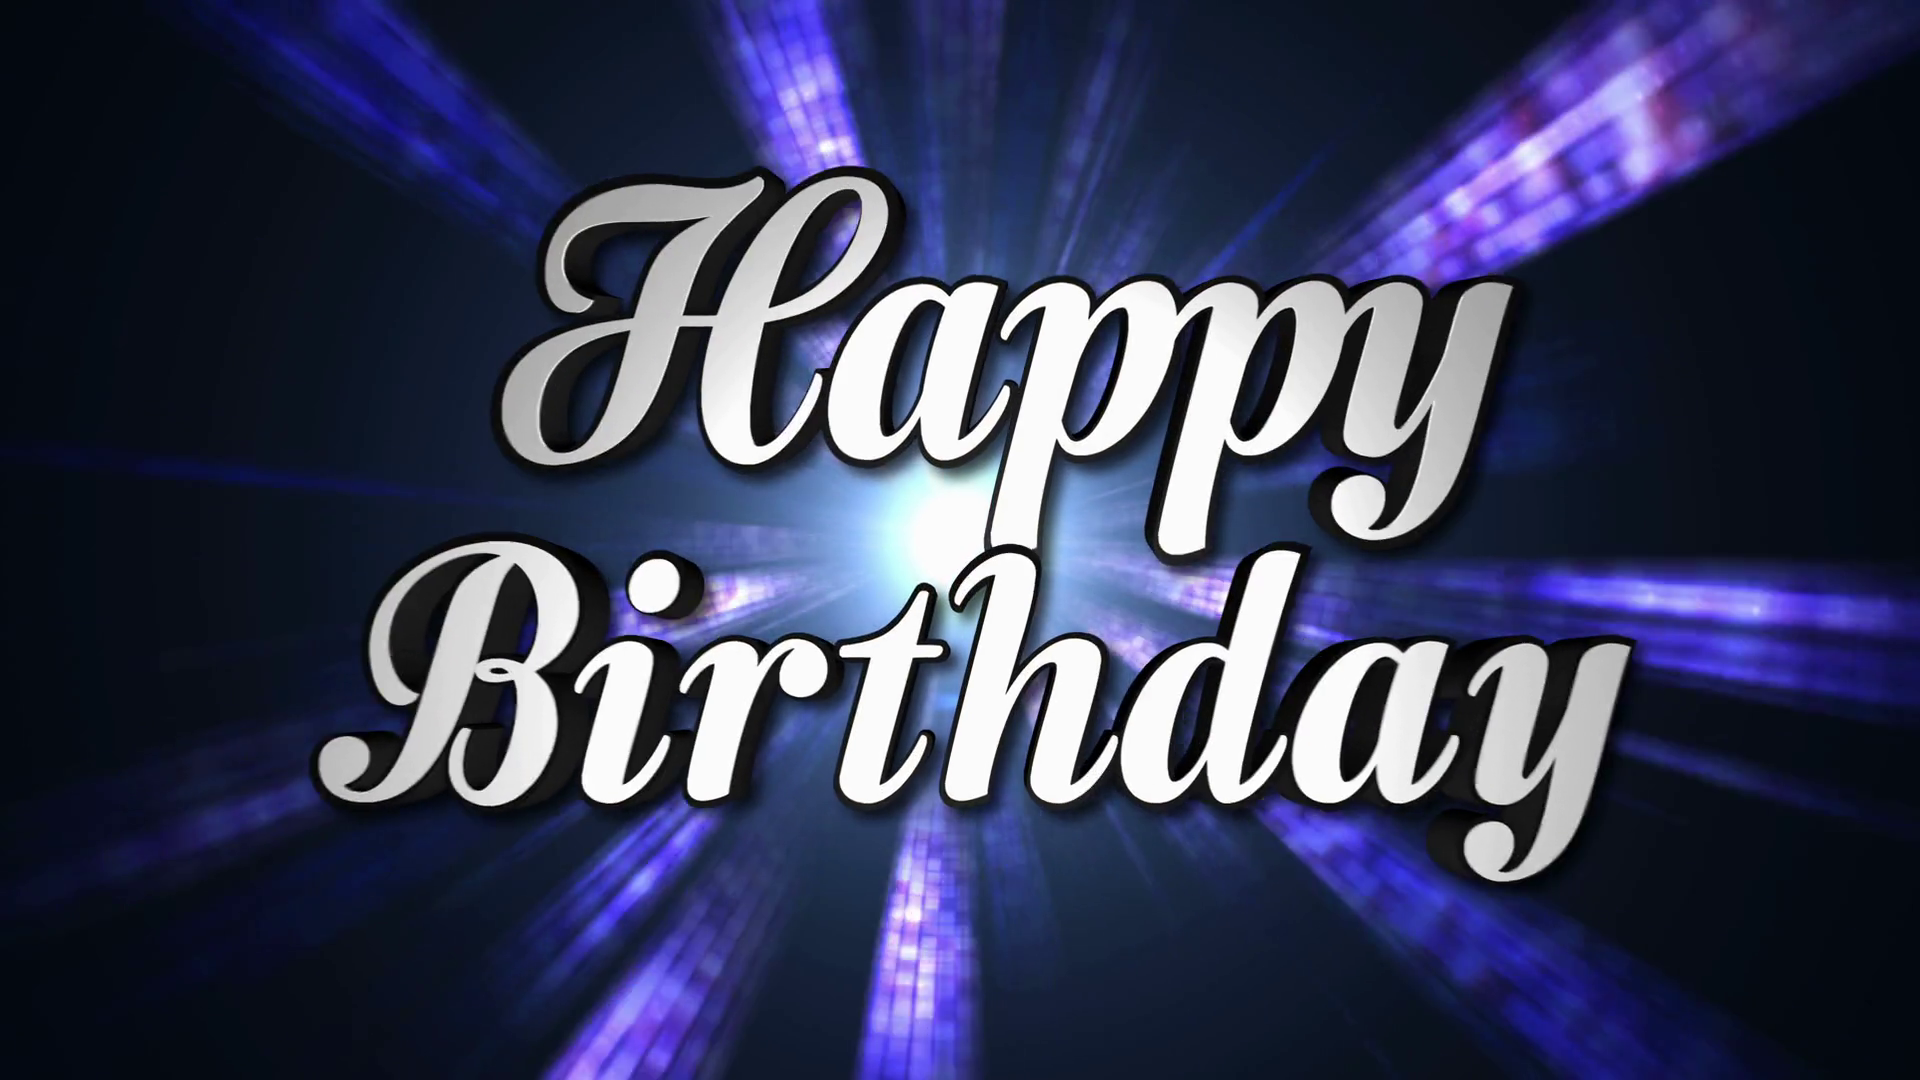 Happy Birthday Animation Text and Disco Dance Background, Zoom IN/OUT  Rotation, with Alpha Channel, Loop, 4k Motion Background - Storyblocks